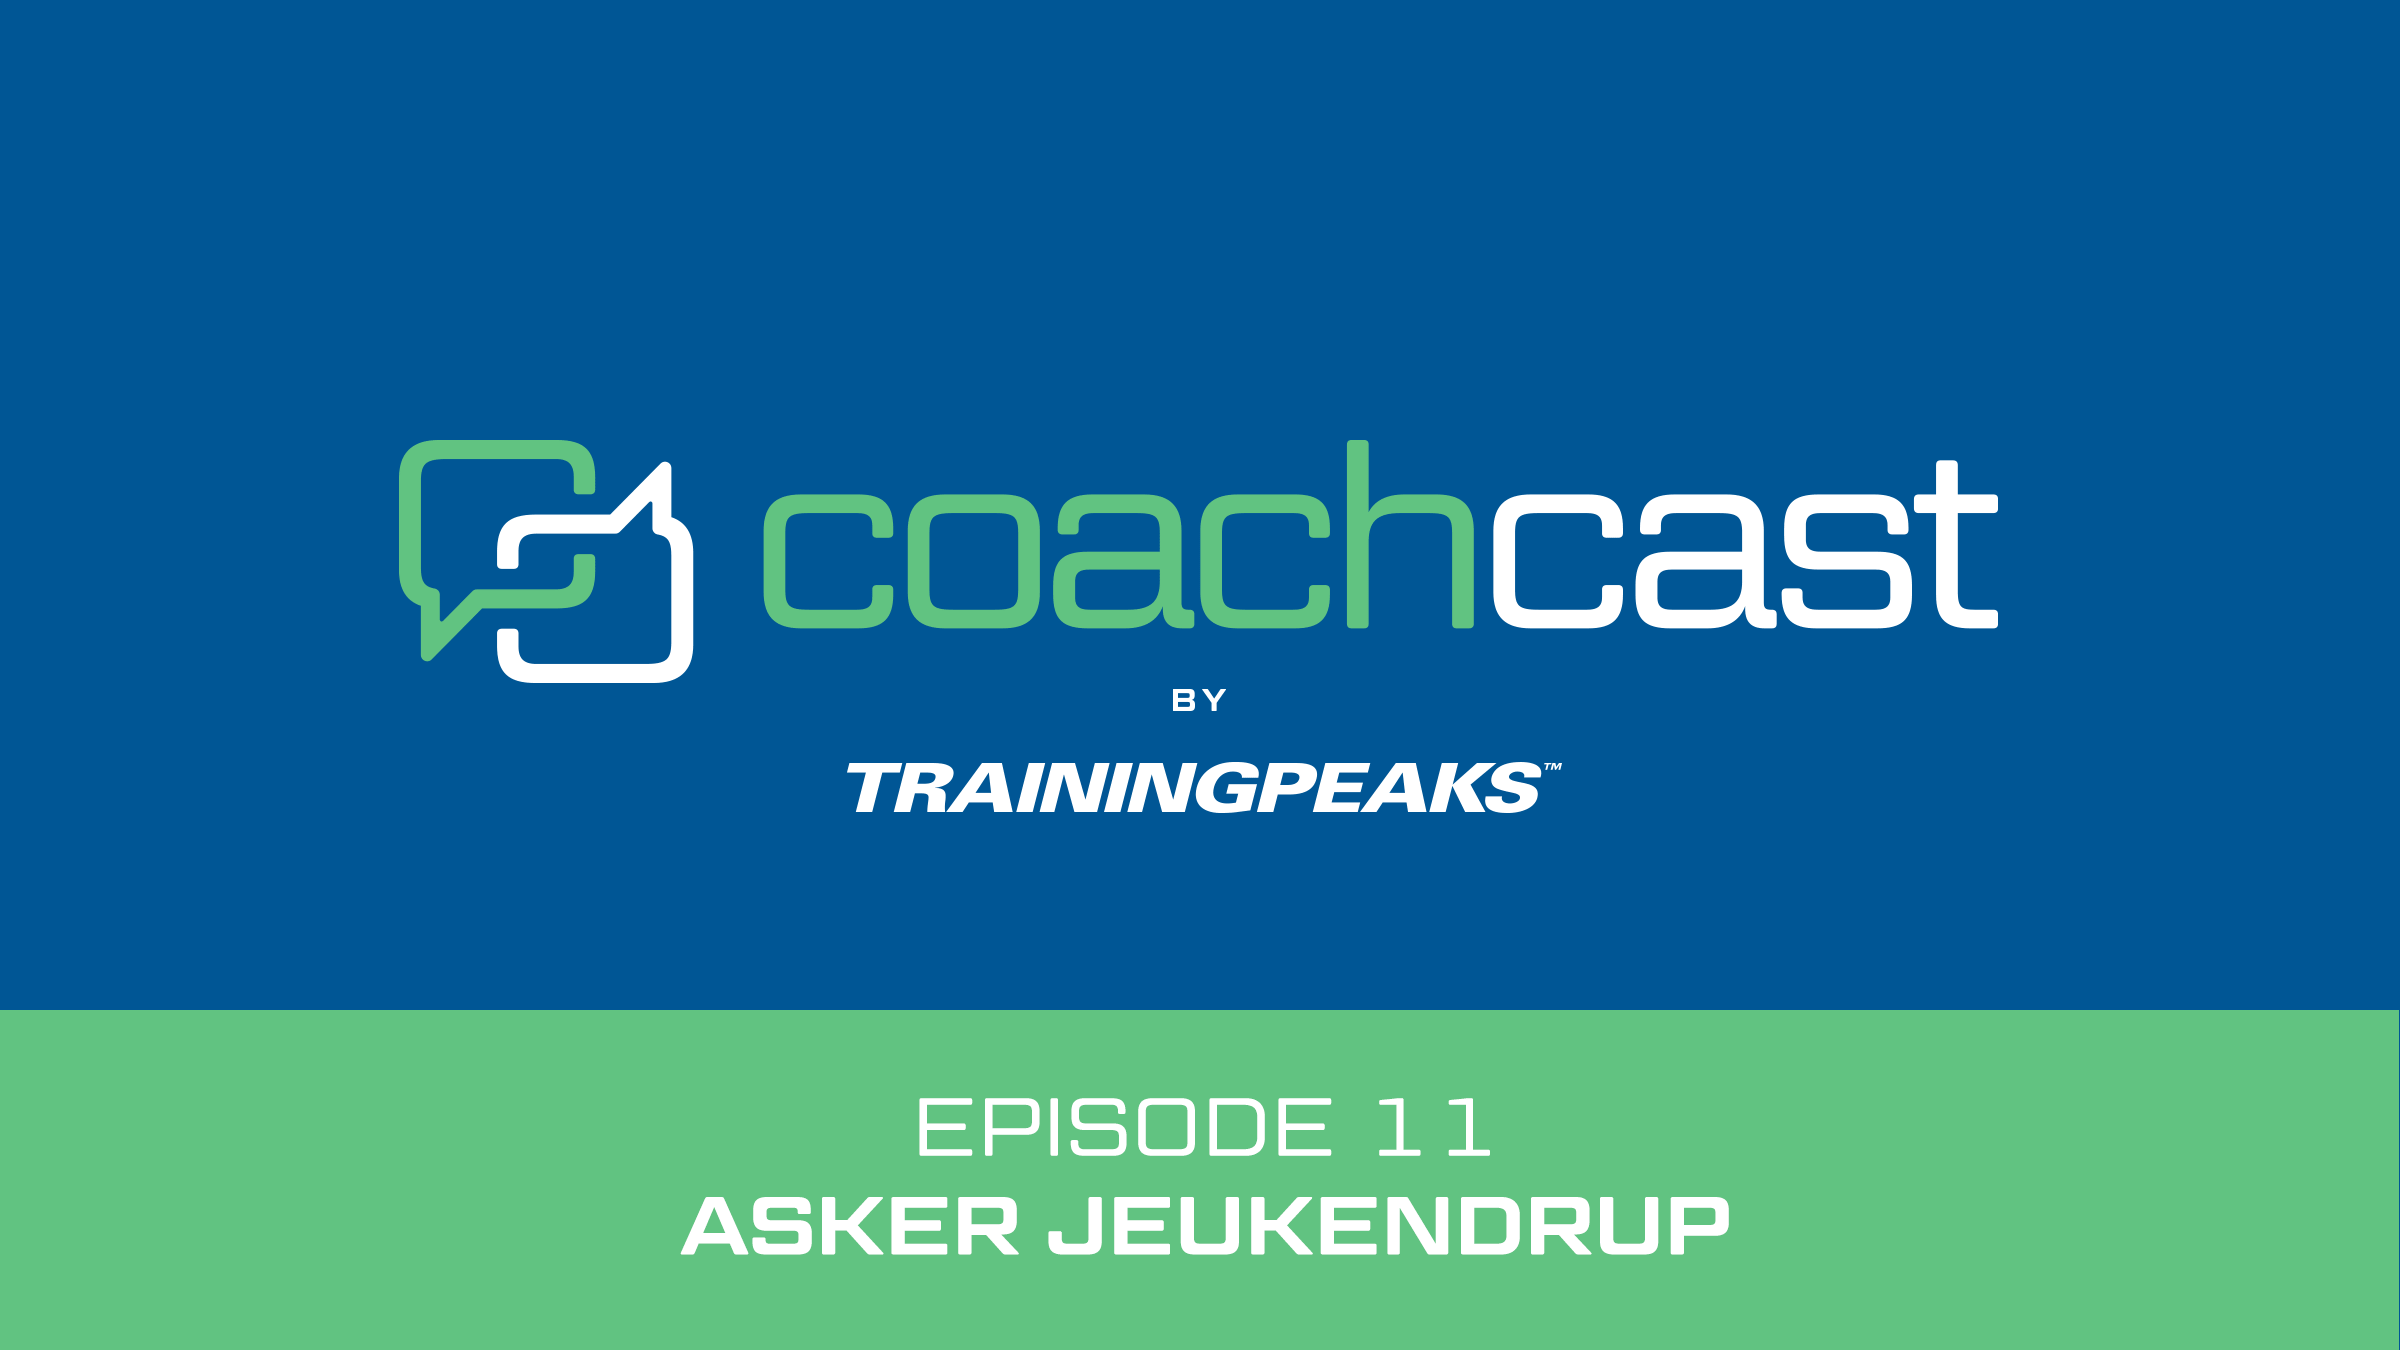 CoachCast: Nutrition Myth Busting with Asker Jeukendrup